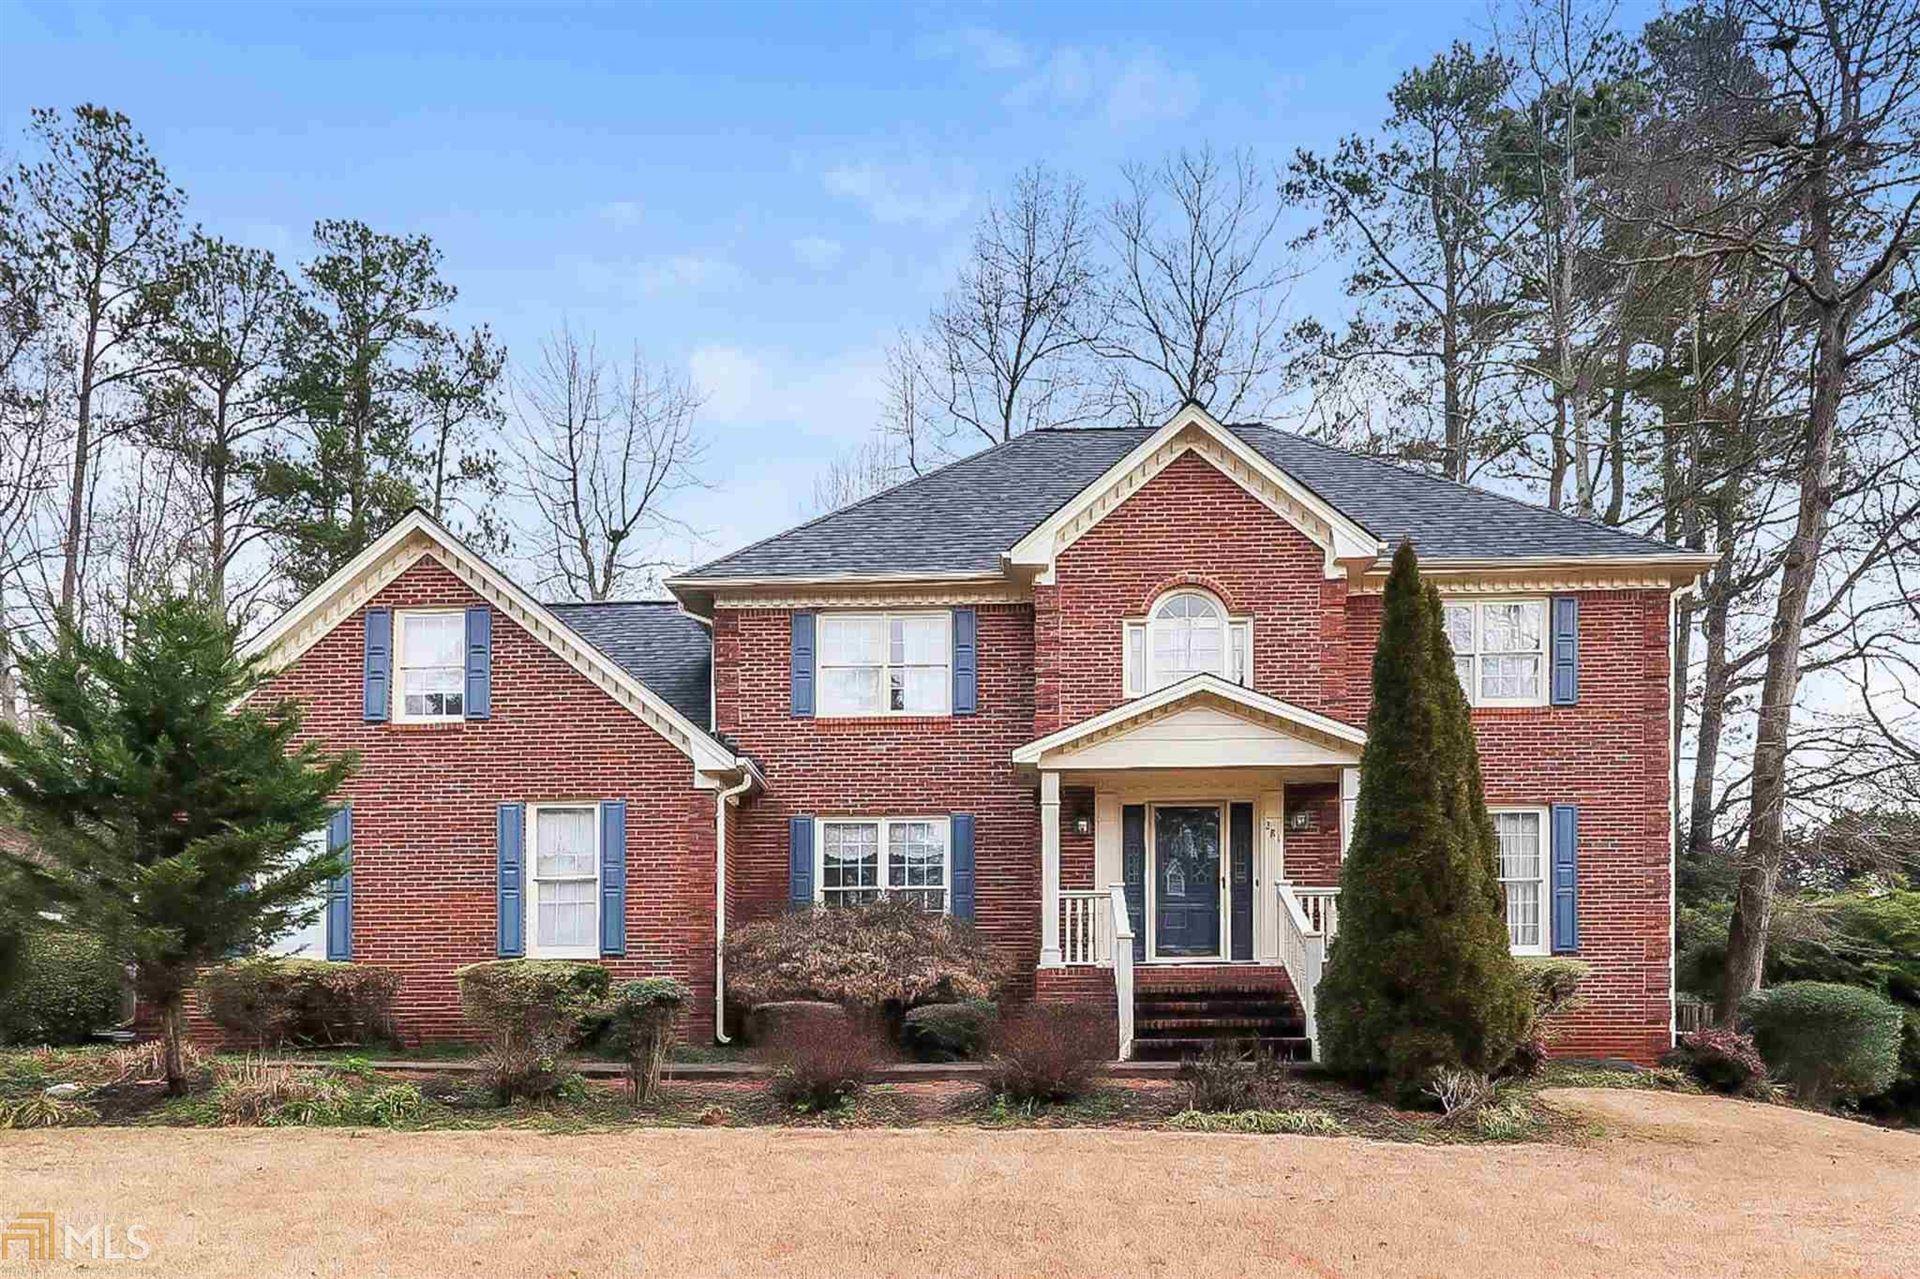 281 Hanarry, Lawrenceville, GA 30046 - #: 8748173